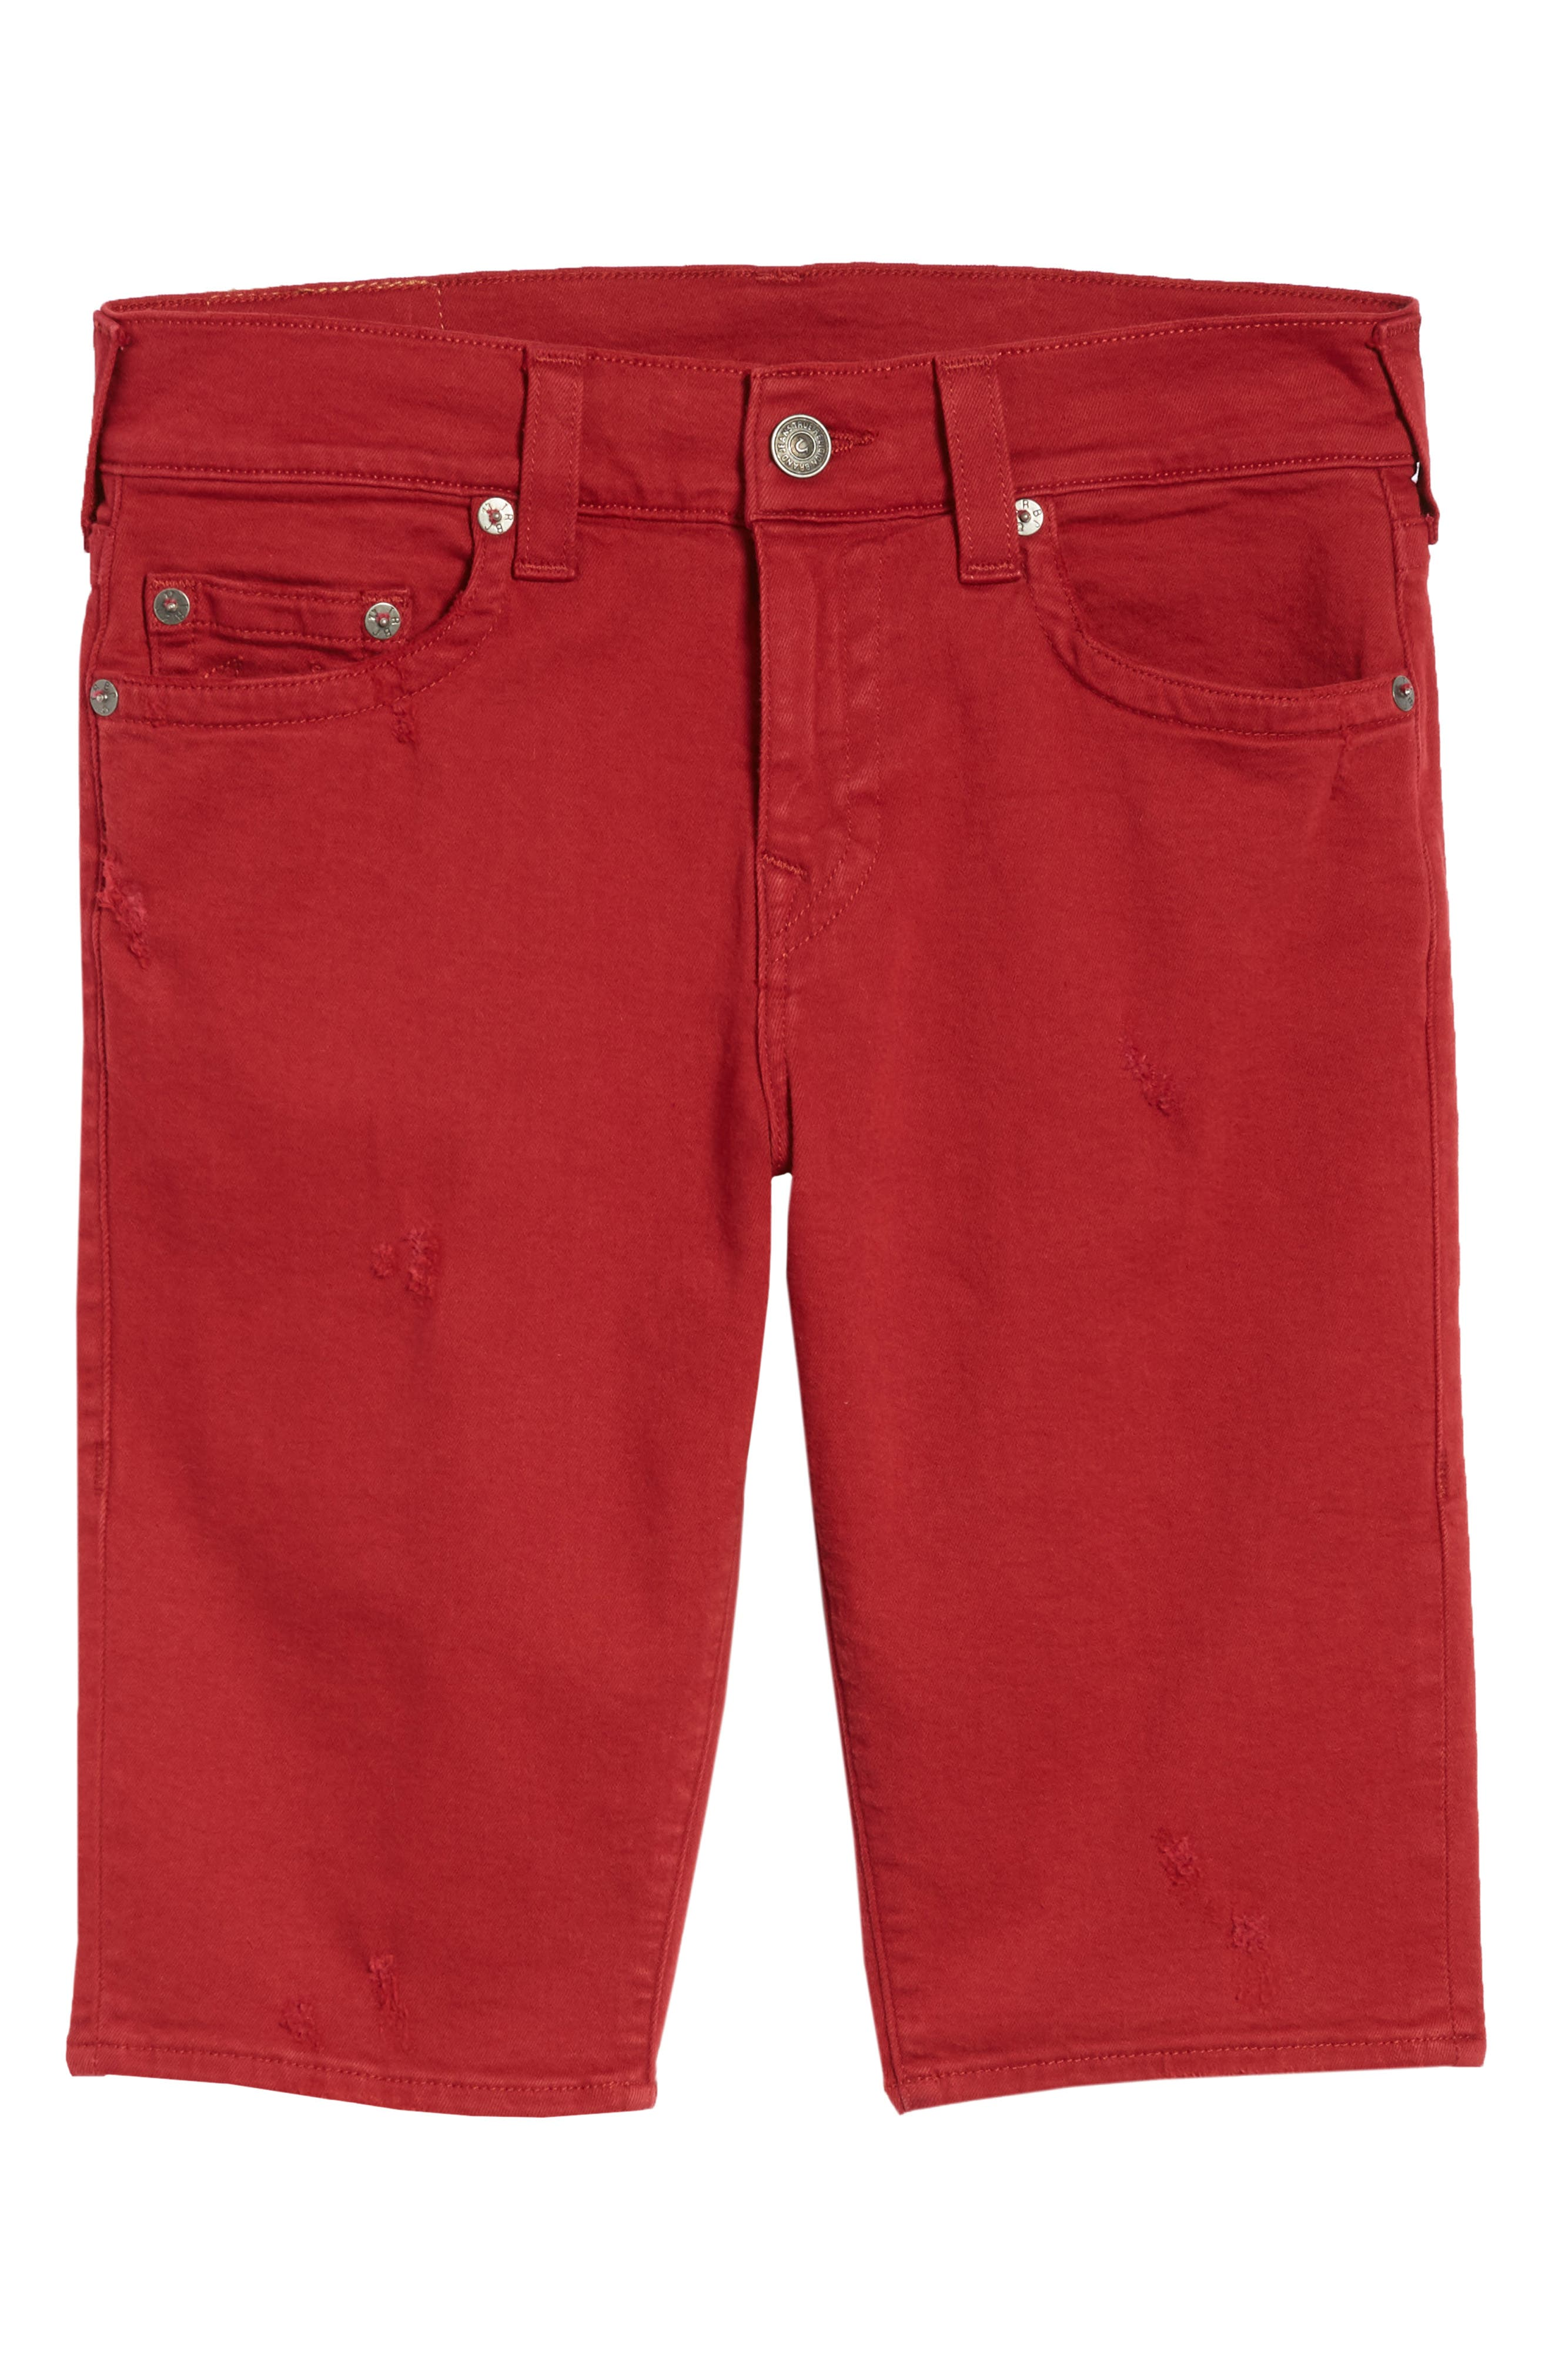 Ricky Relaxed Fit Shorts,                             Alternate thumbnail 6, color,                             Firecracker Red